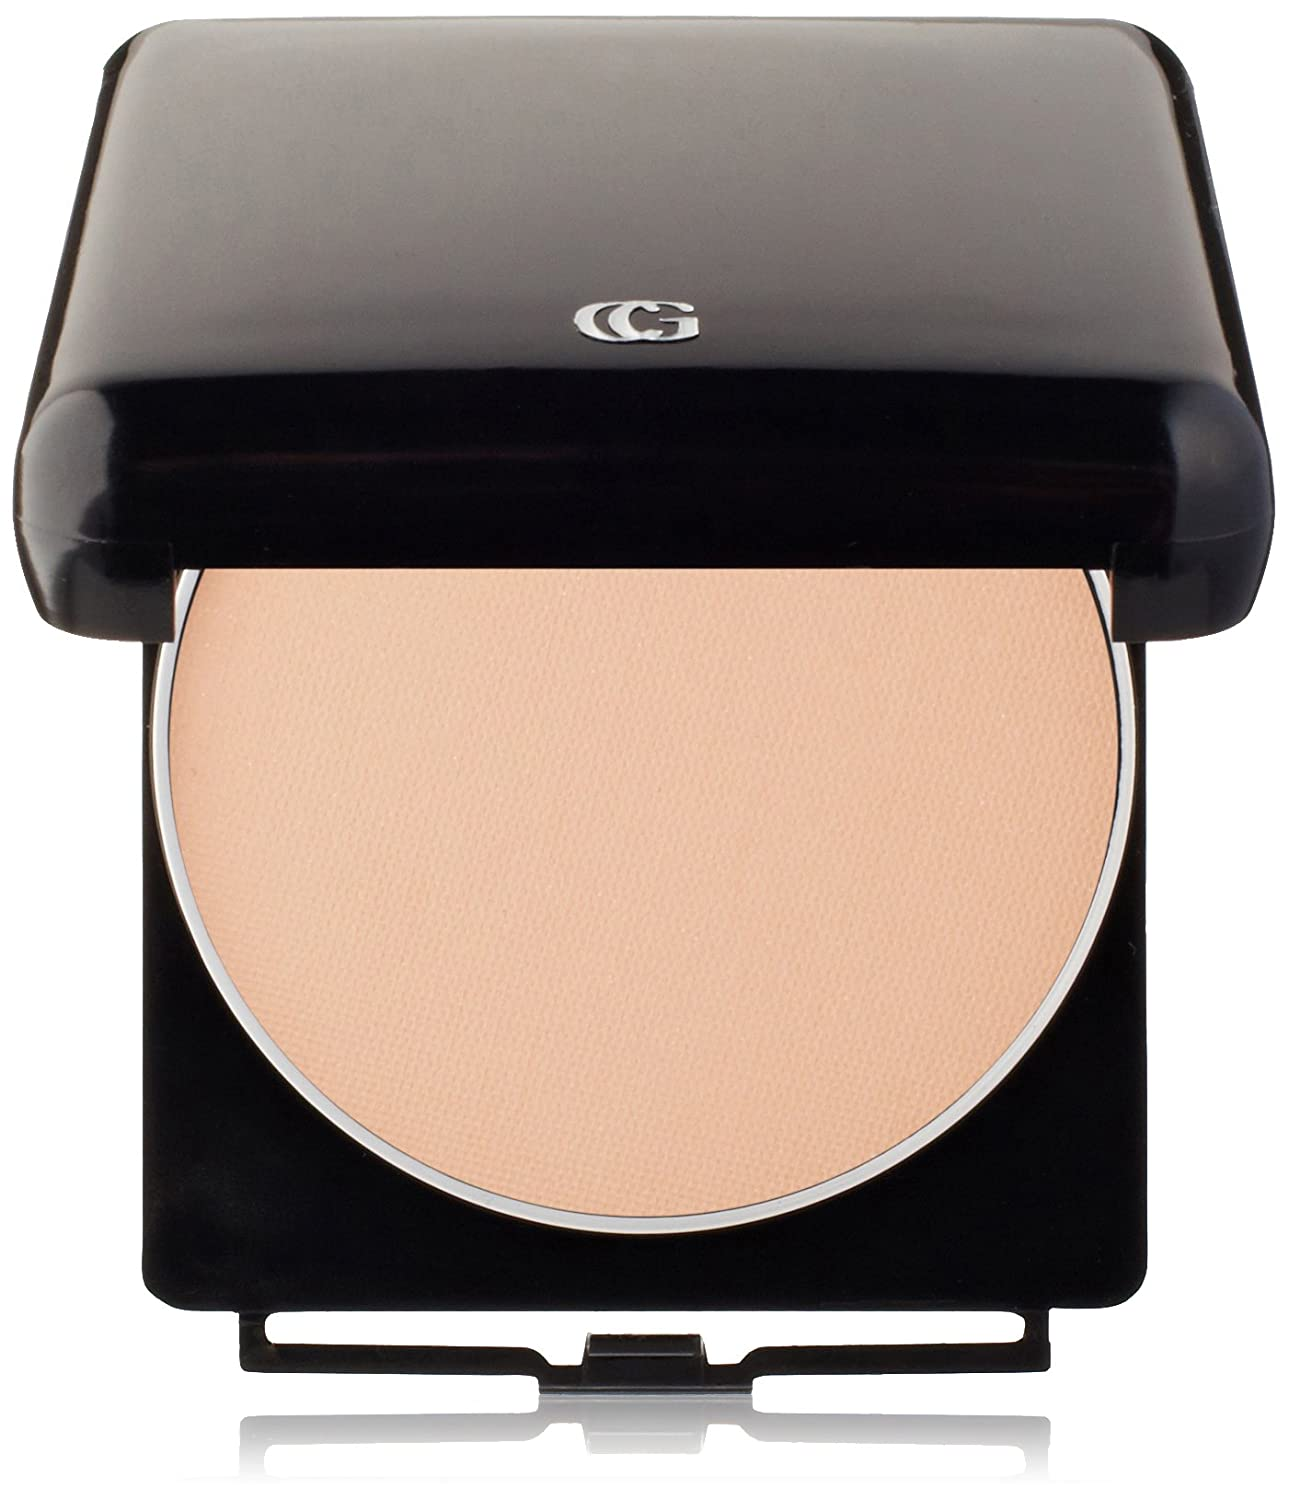 CoverGirl Simply Powder Foundation Natural Ivory(C) 515, 0.41-Ounce Compact (Pack of 2)